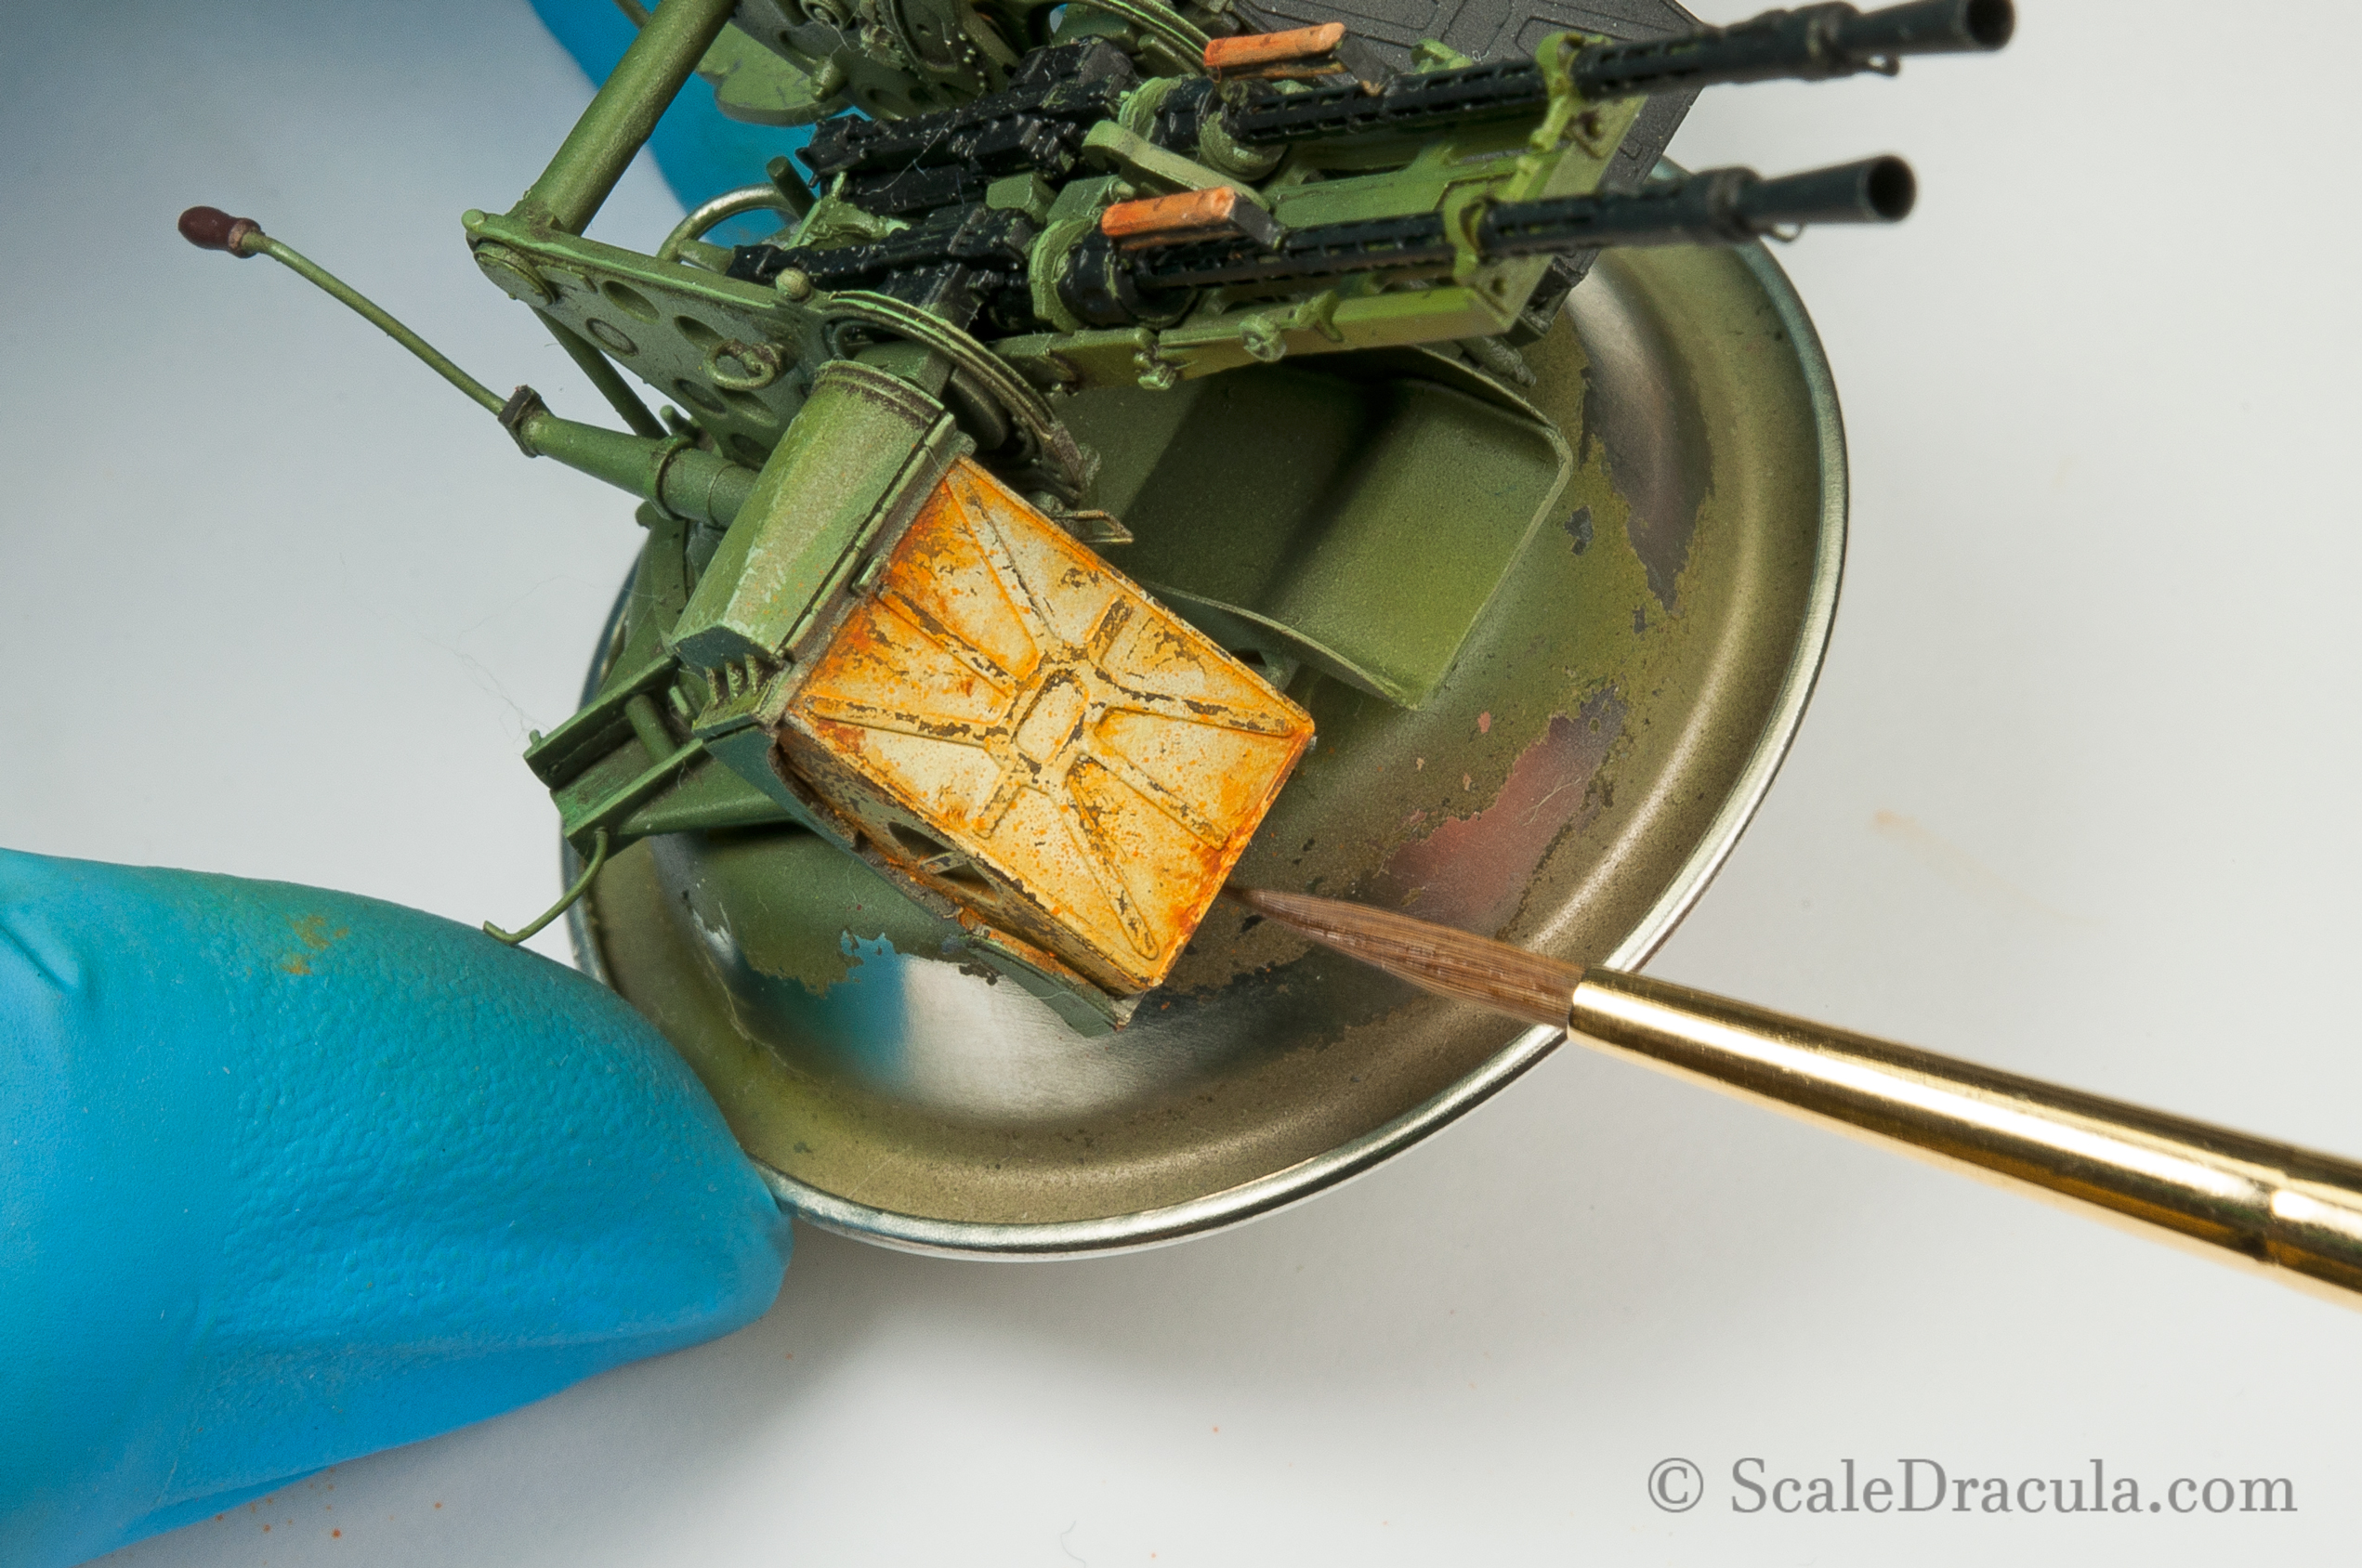 Painting rust residue on ZPU-2 gun, Toyota technical by Meng